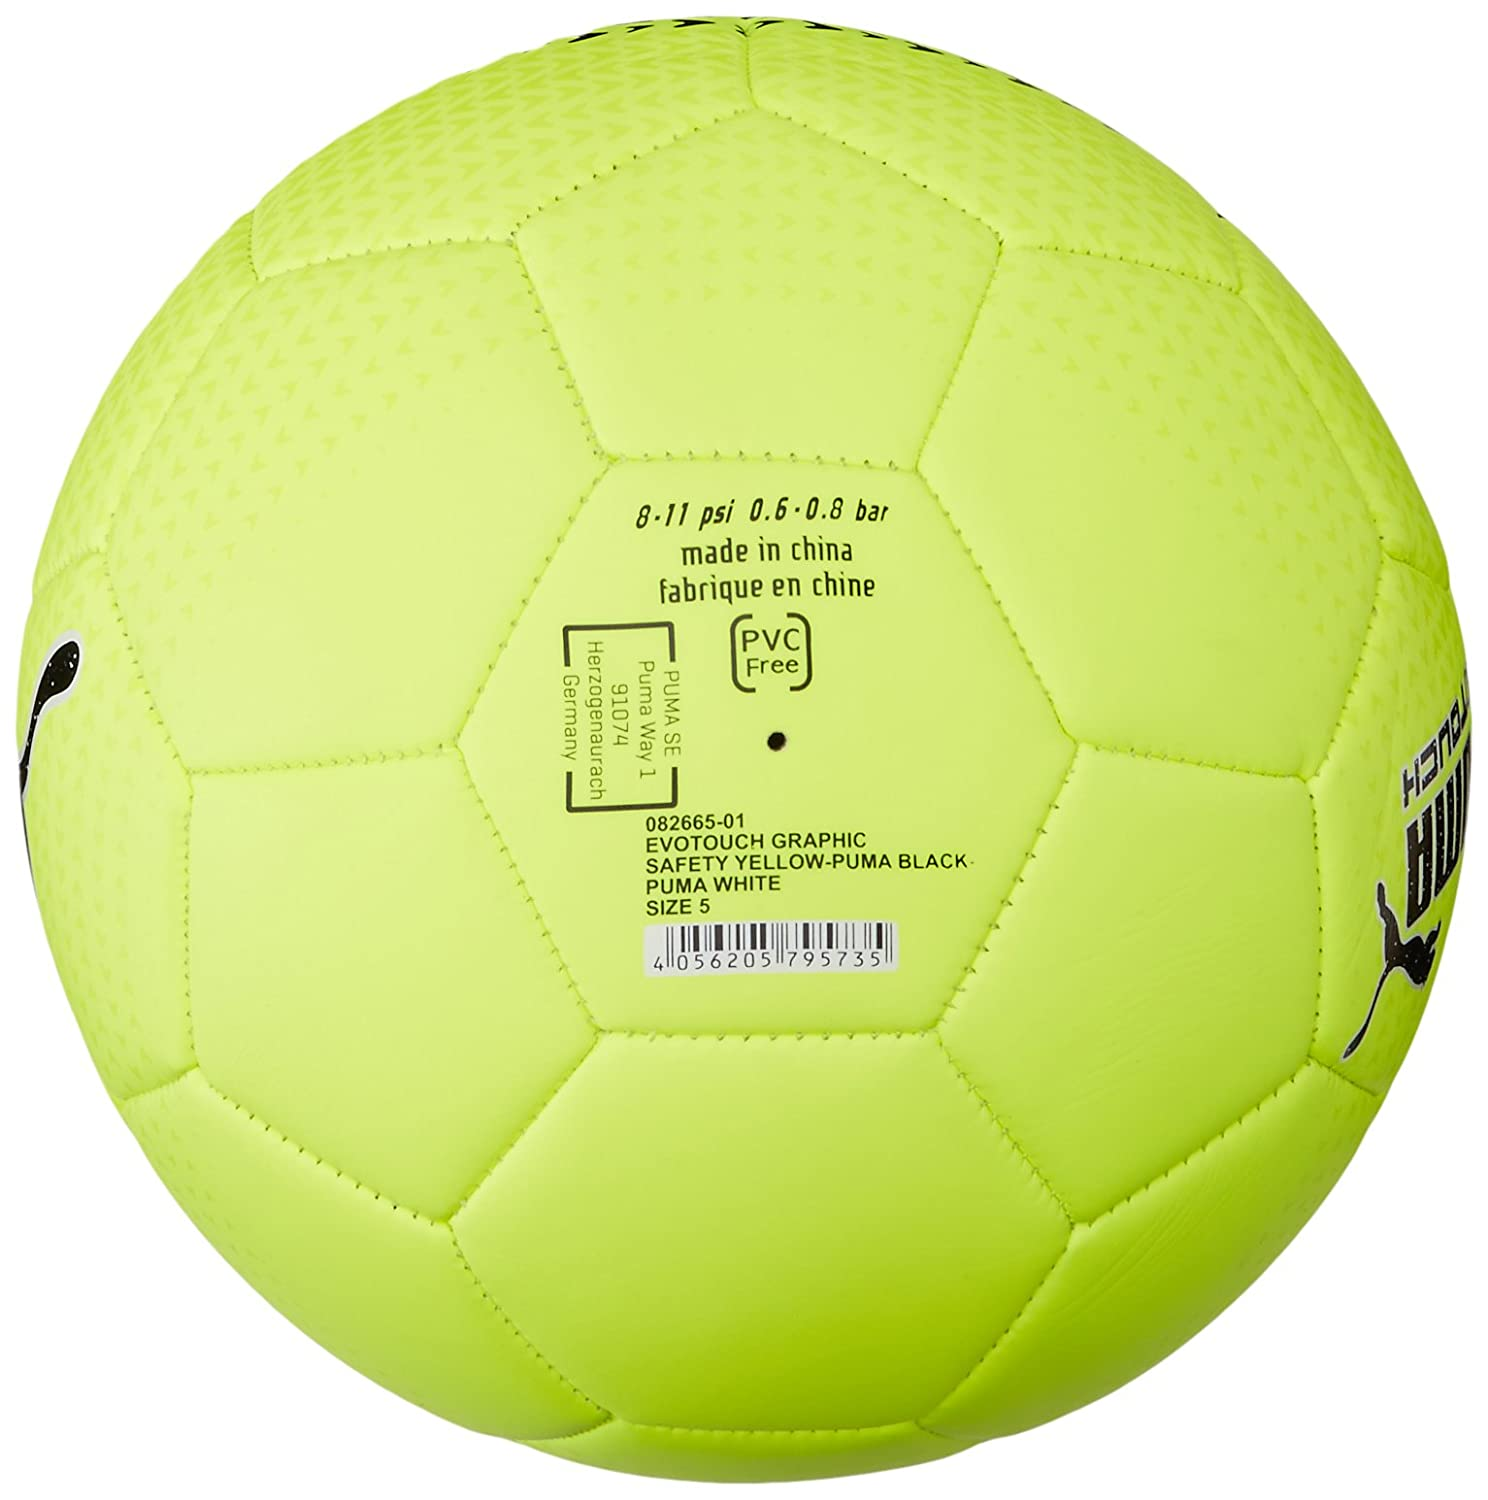 Buy Puma evoTouch Graphic Football, Size 5 (Yellow/Black/White) Online at  Low Prices in India - Amazon.in